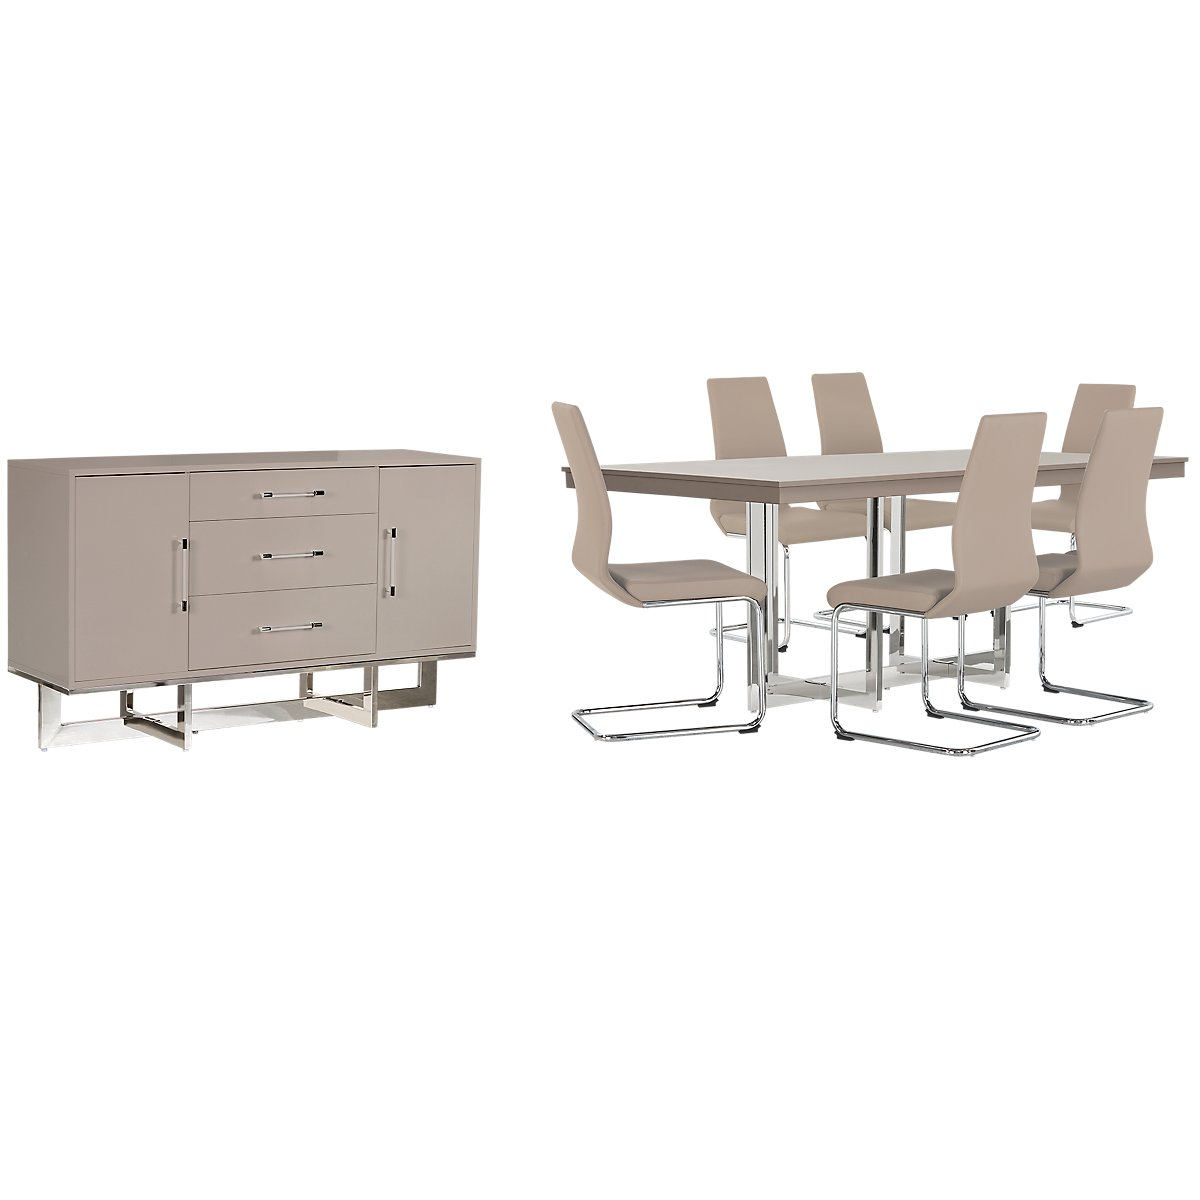 Champagne Dining Room Furniture: Cortina Champagne Dining Room